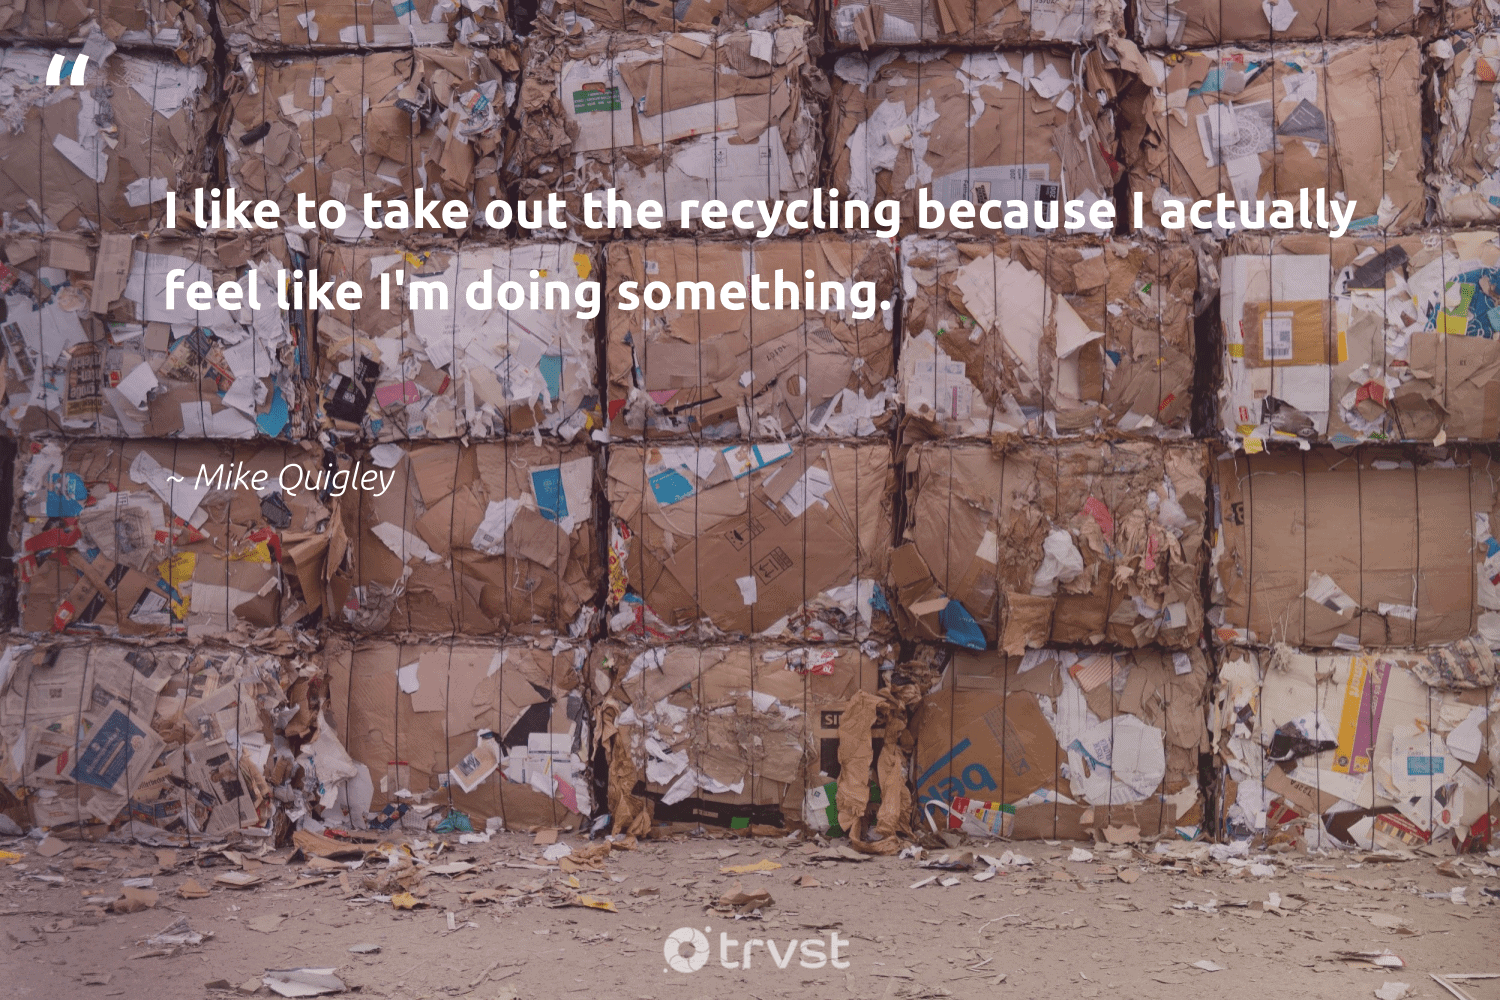 """""""I like to take out the recycling because I actually feel like I'm doing something.""""  - Mike Quigley #trvst #quotes #recycling #upcycling #savetheplanet #sustainableliving #socialchange #repair #wastefree #wasteless #socialimpact #reduce"""